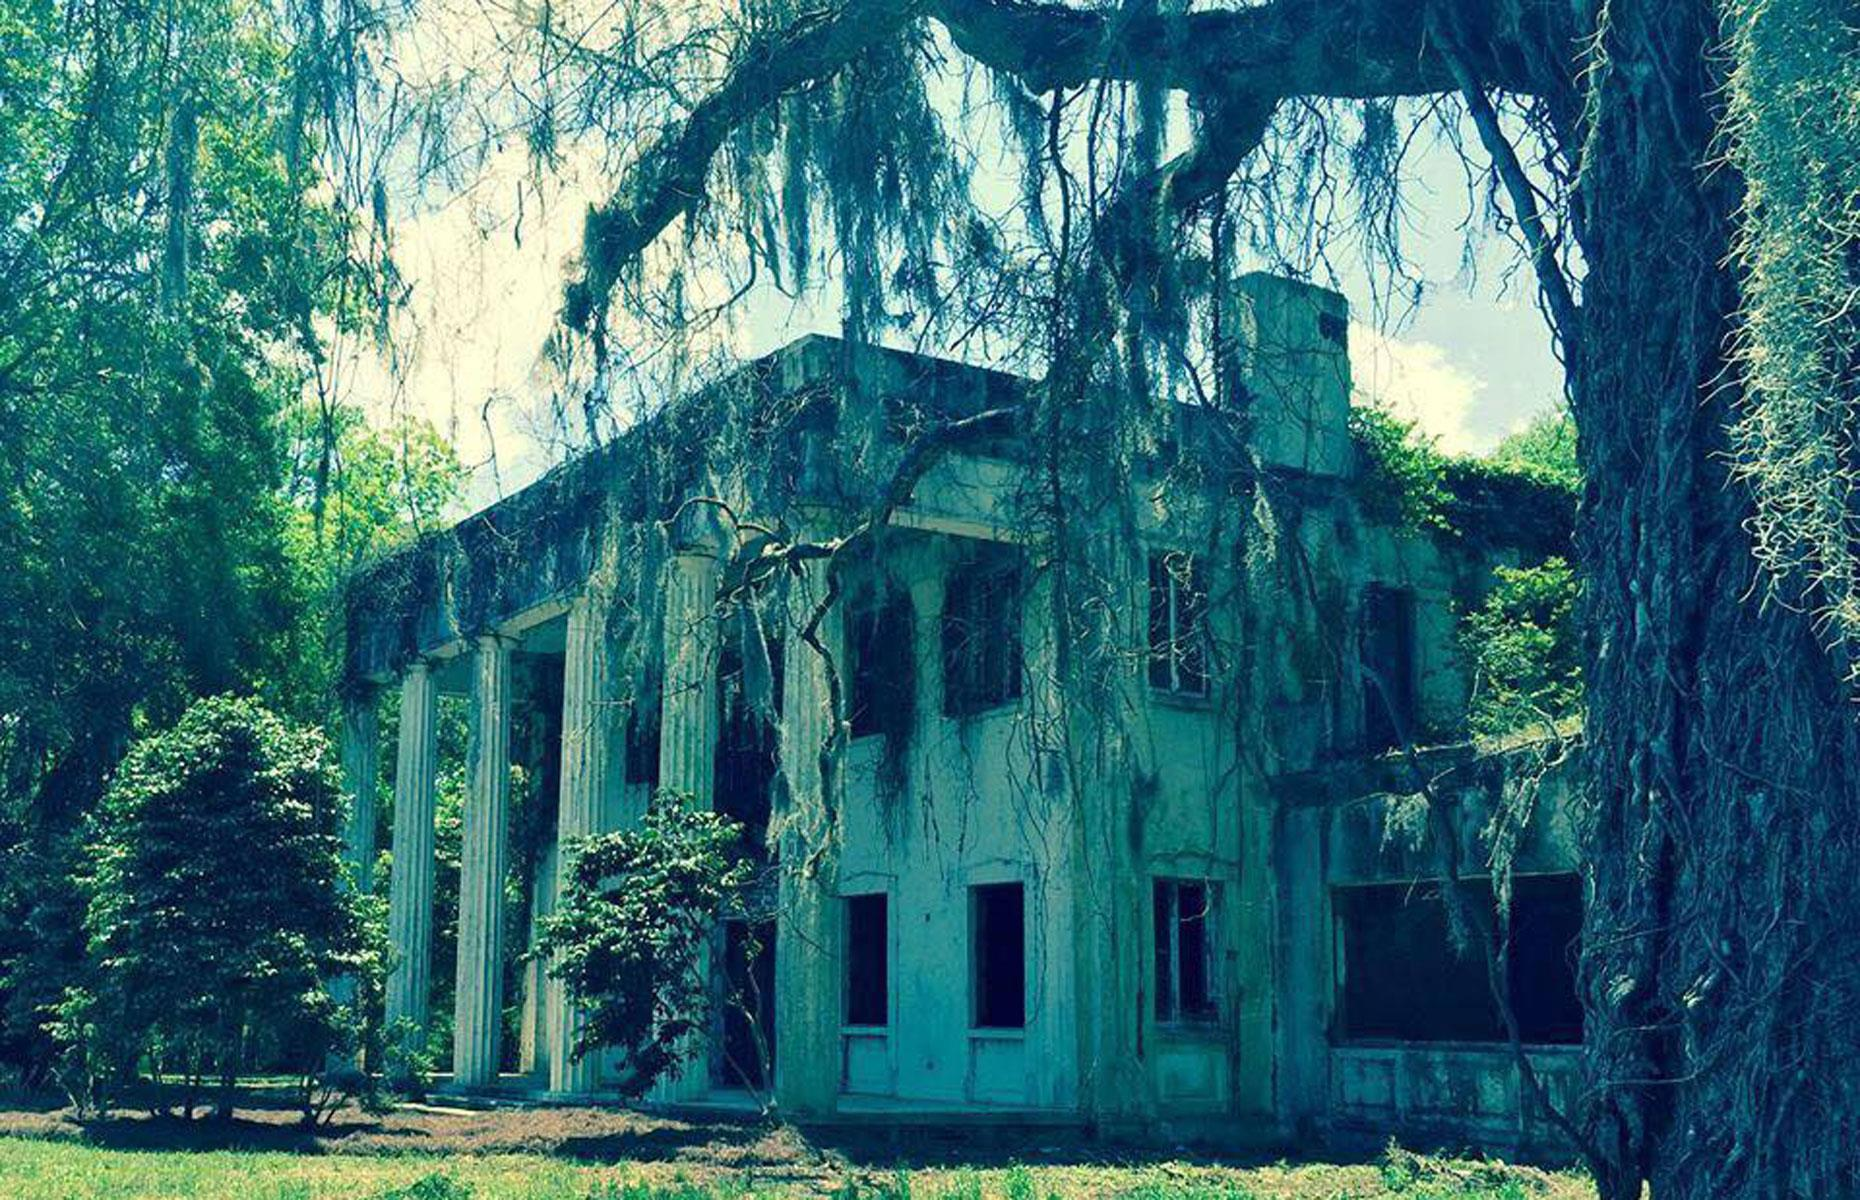 Slide 2 of 101: Steeped in faded grandeur, this overgrown Antebellum mansion near the town of Lowndesboro dates back to 1830. Also known as Turner-Dickson House, it was rebuilt in 1940 following a devastating fire. Yet the elegant plantation house burned to the ground yet again in 1964.